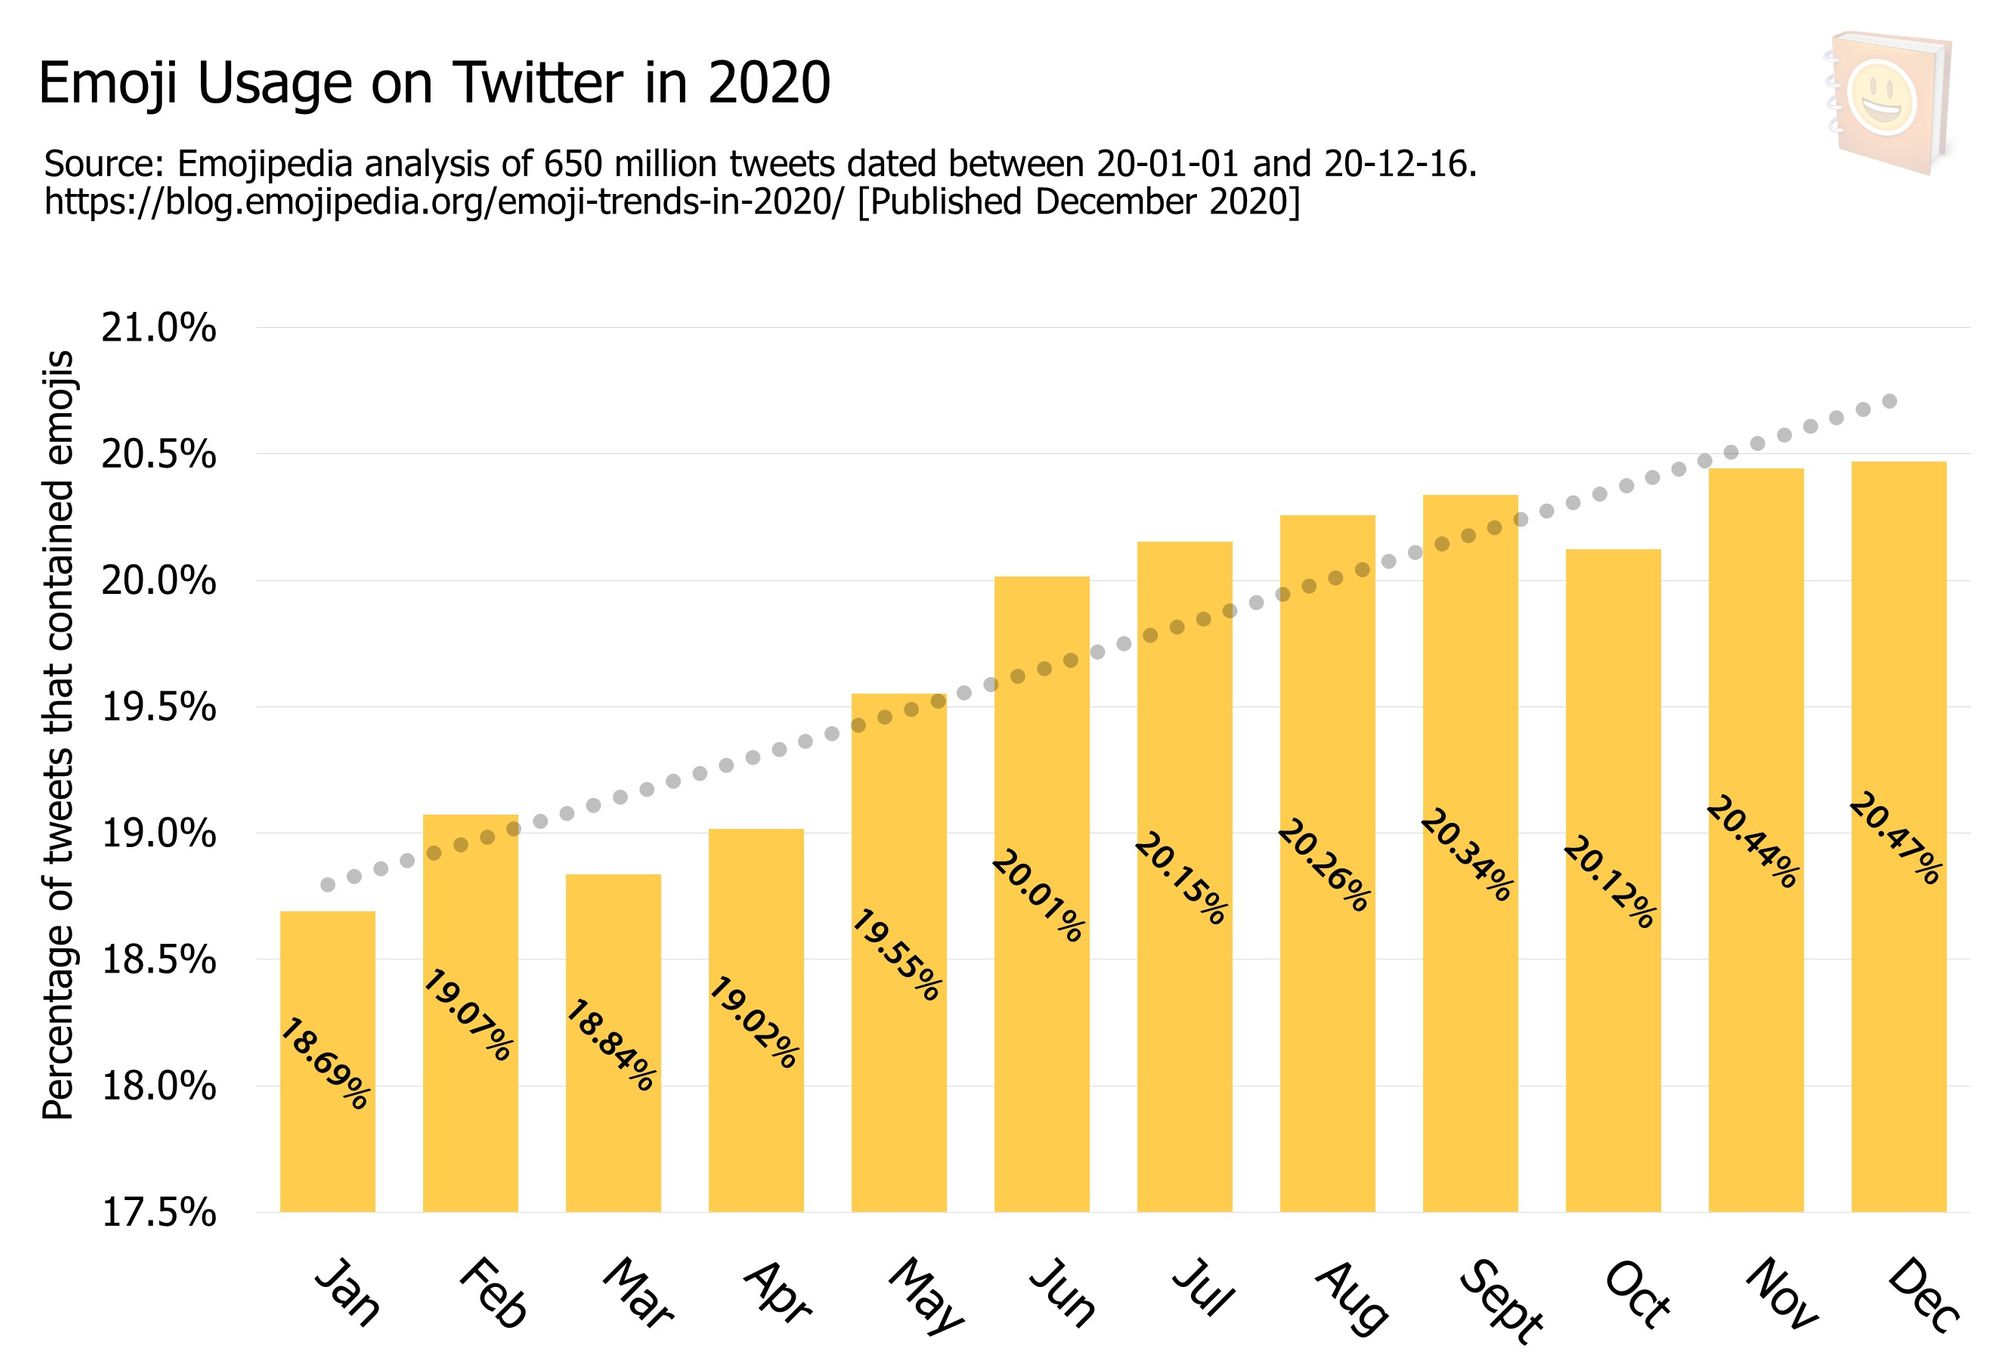 Emoji-Trends-In-2020---Emoji-Usage-on-Twitter-in-2020-1